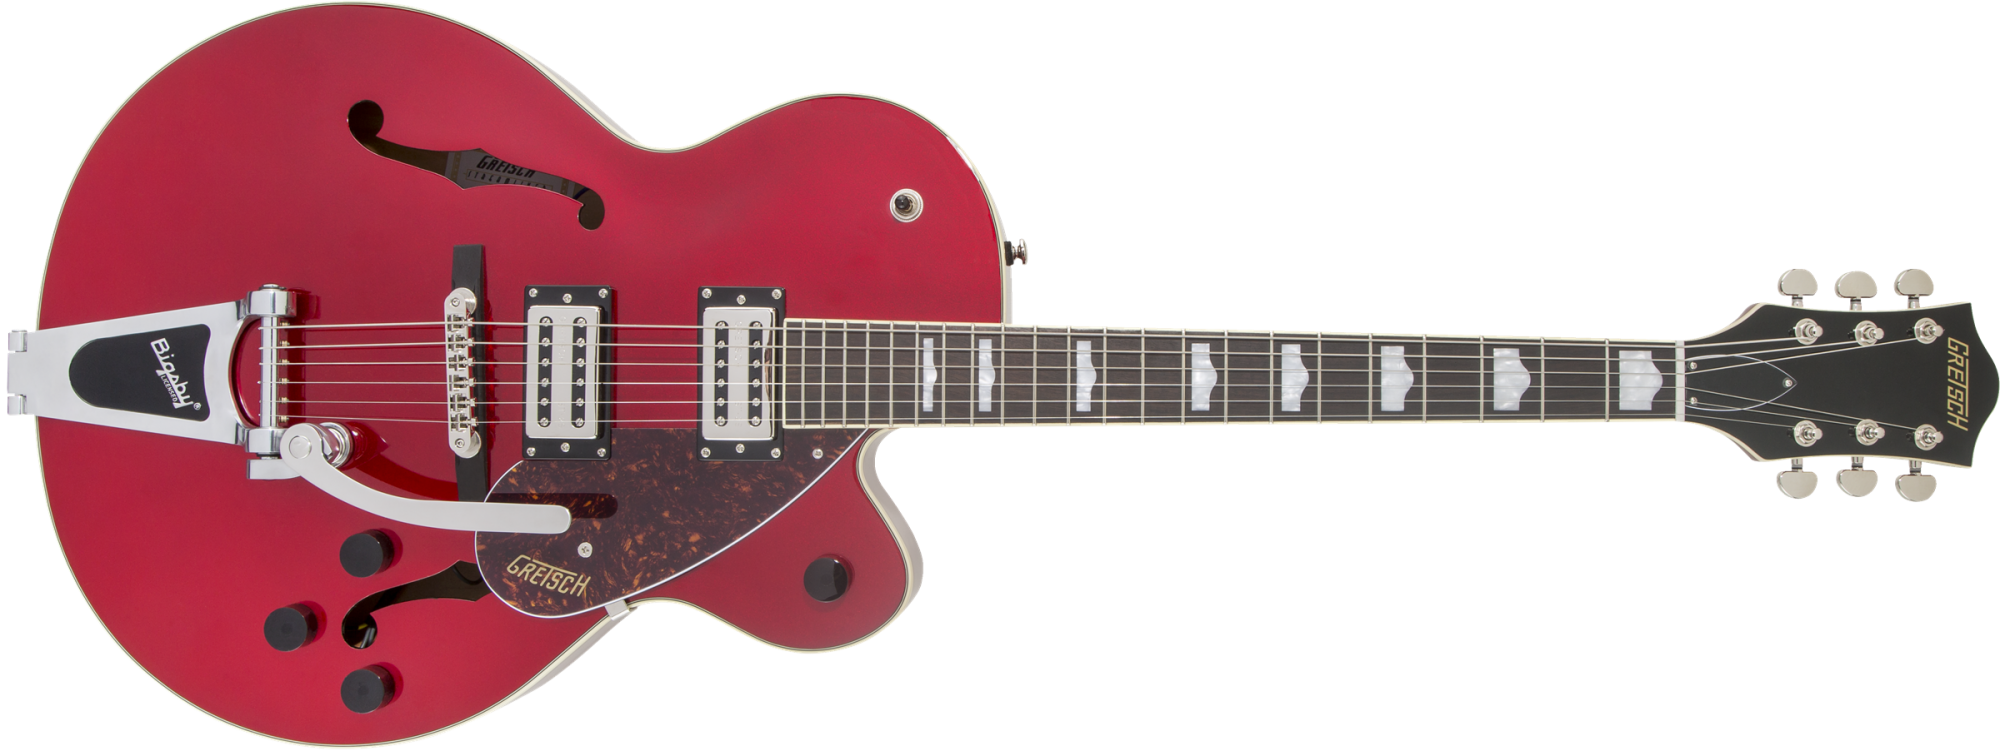 G2420T Streamliner Hollow Body with Bigsby